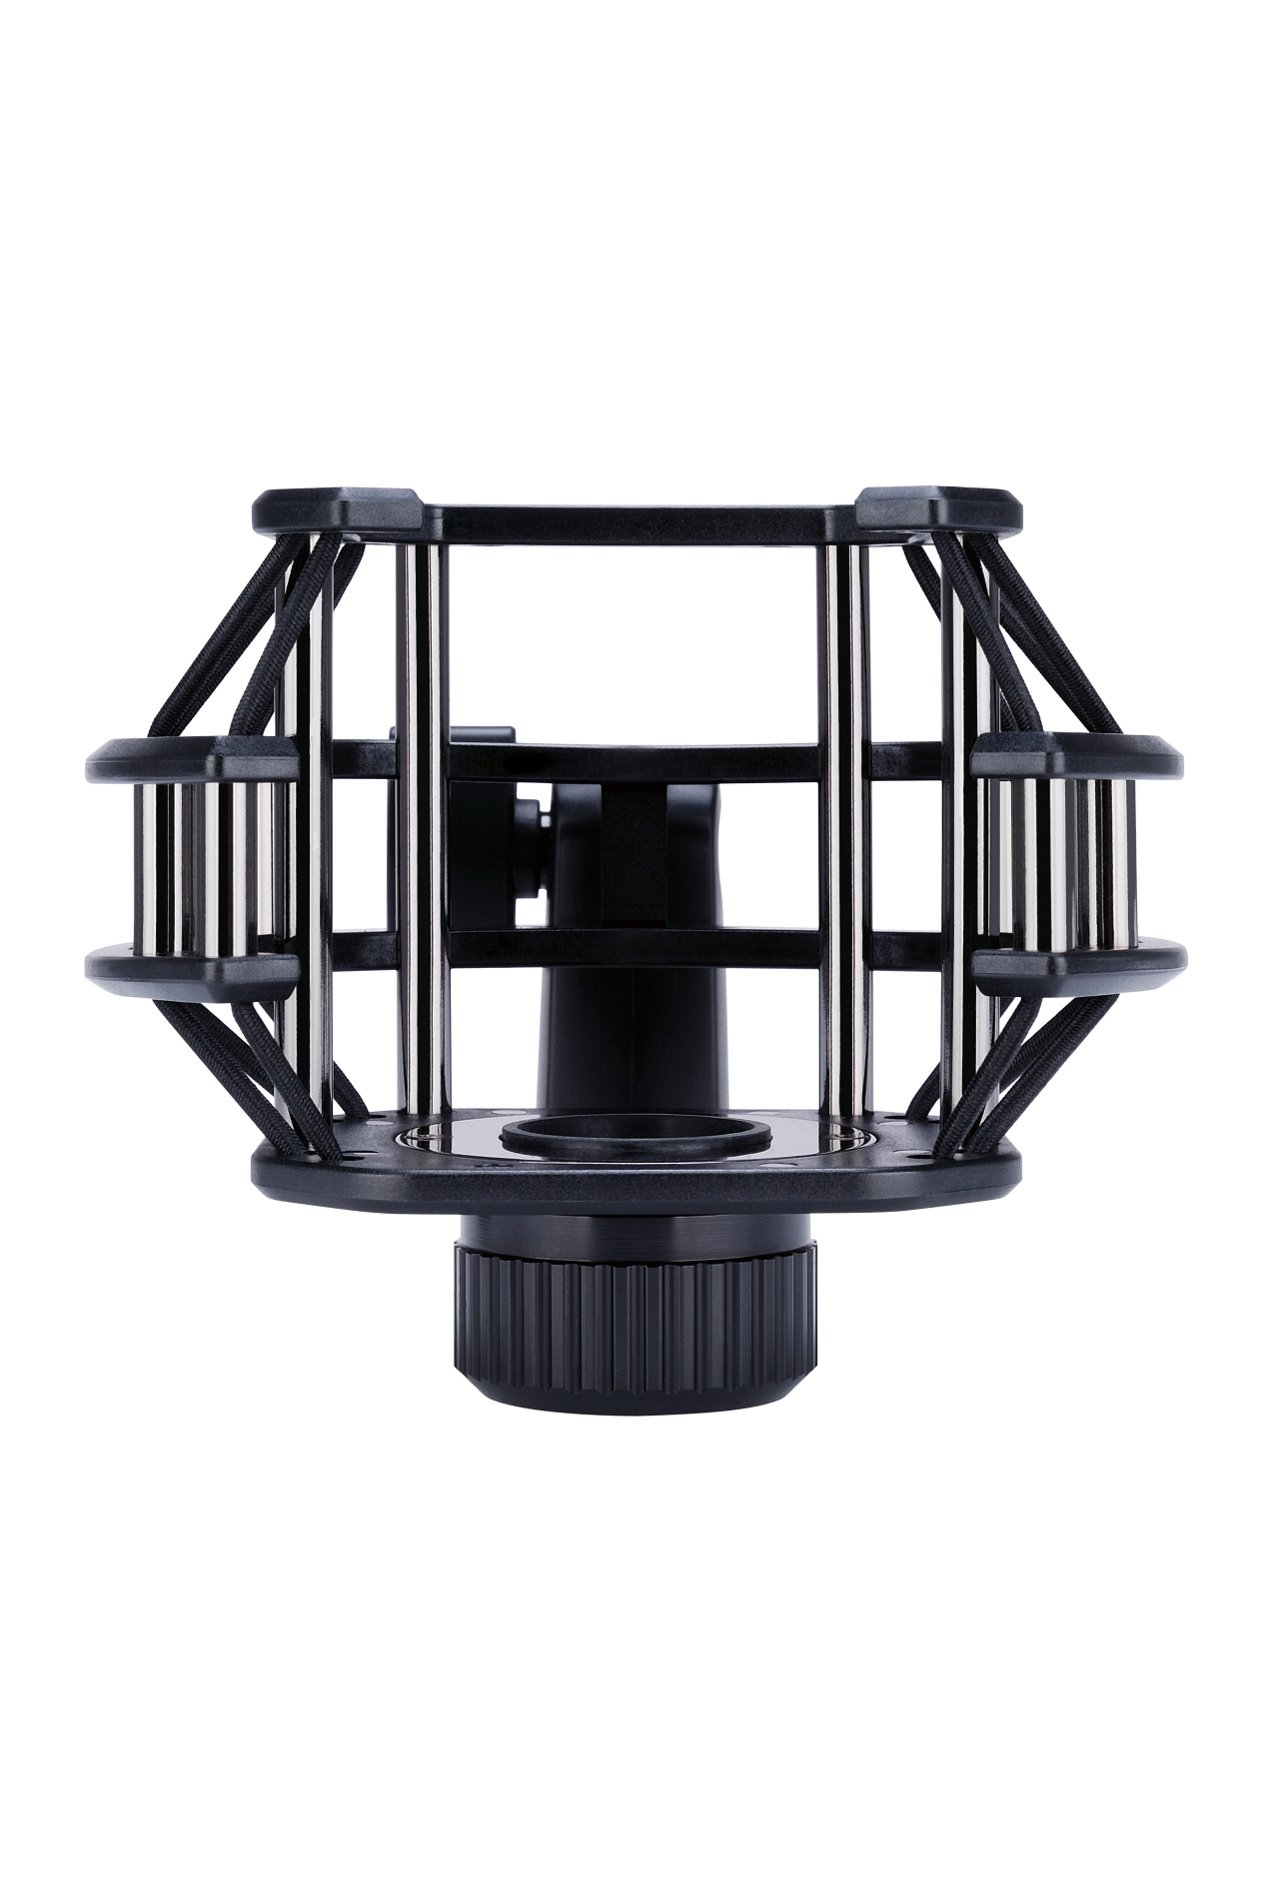 Microphone Shock Mount for LCT-550 & LCT-640